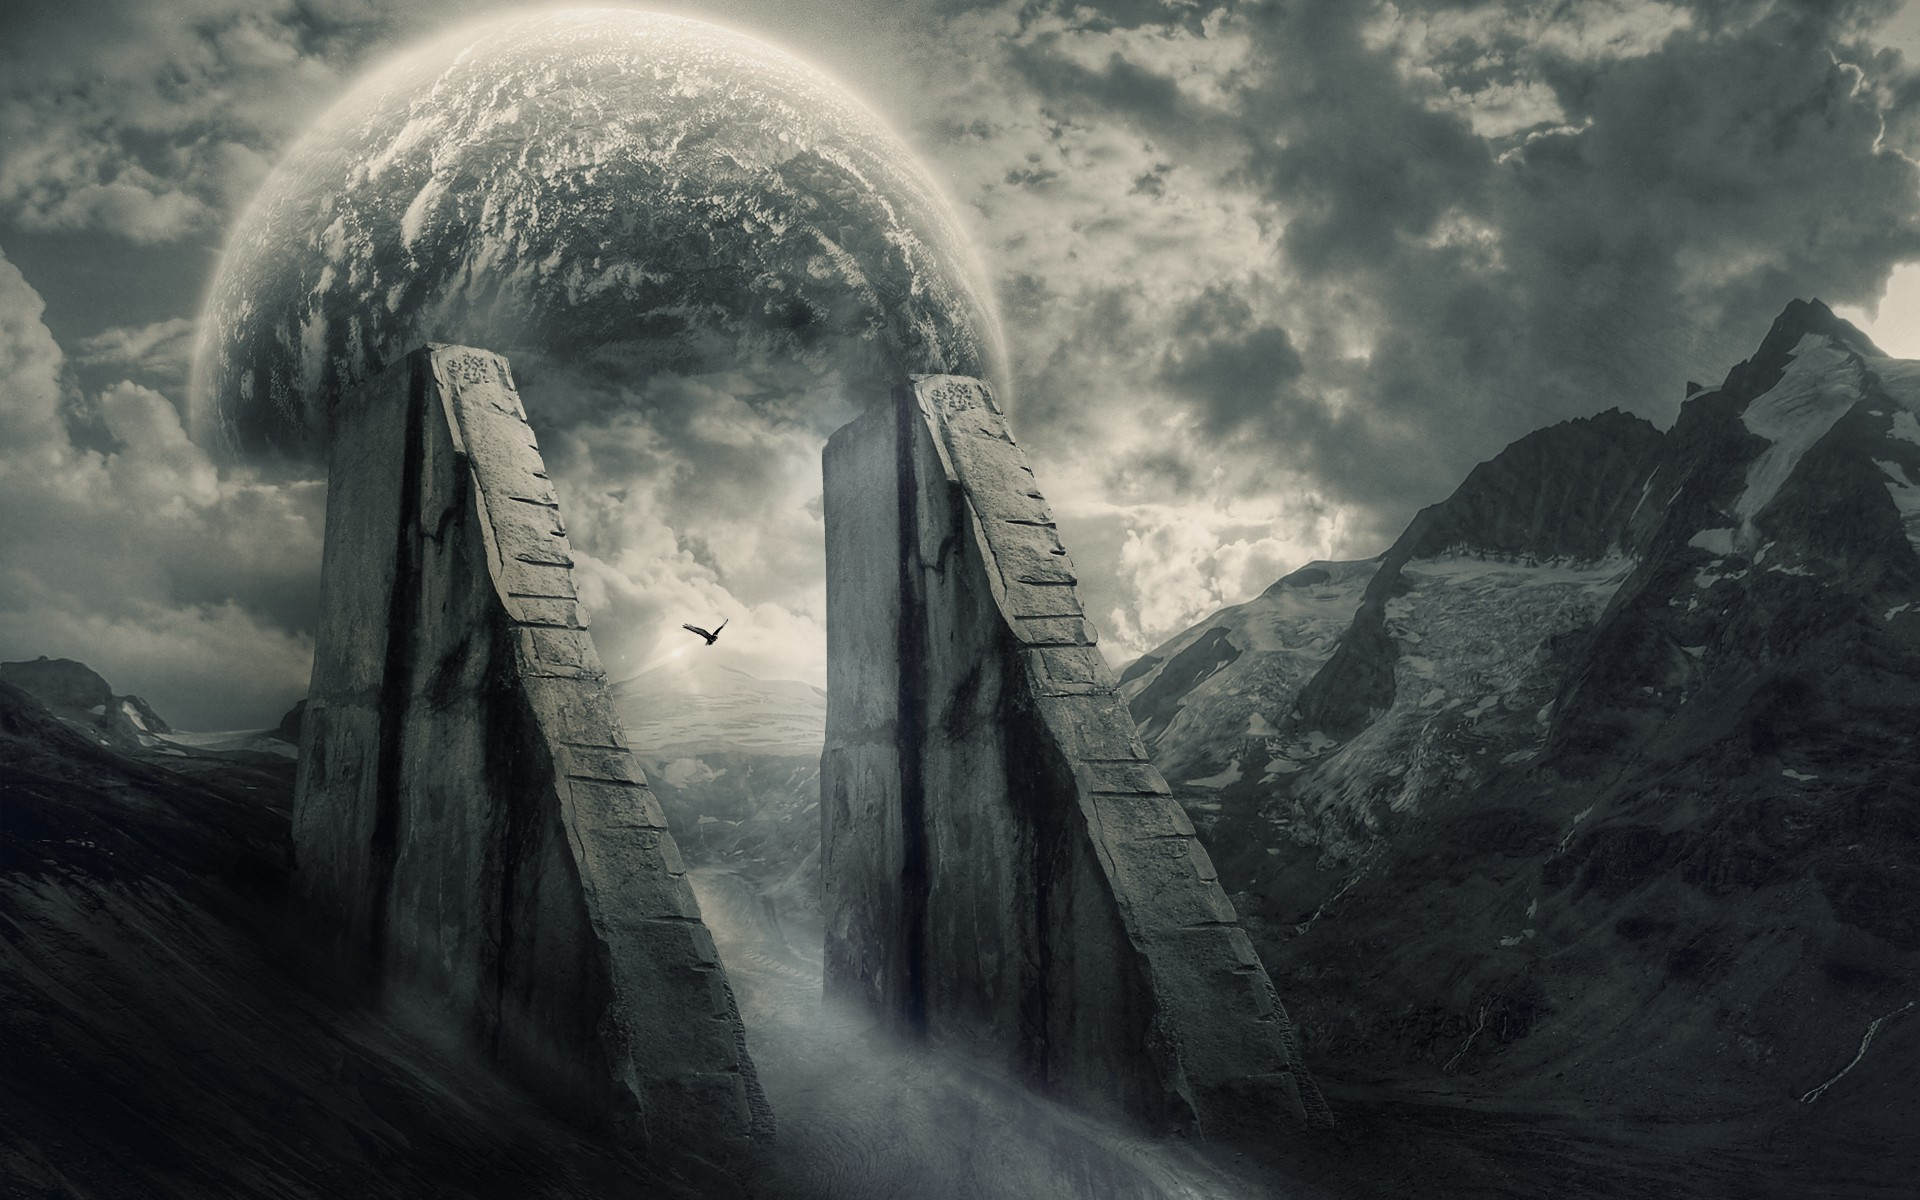 A Collection Of Dark Mysterious Hd Fantasy Wallpapers: Mysterious Scenery Wallpapers